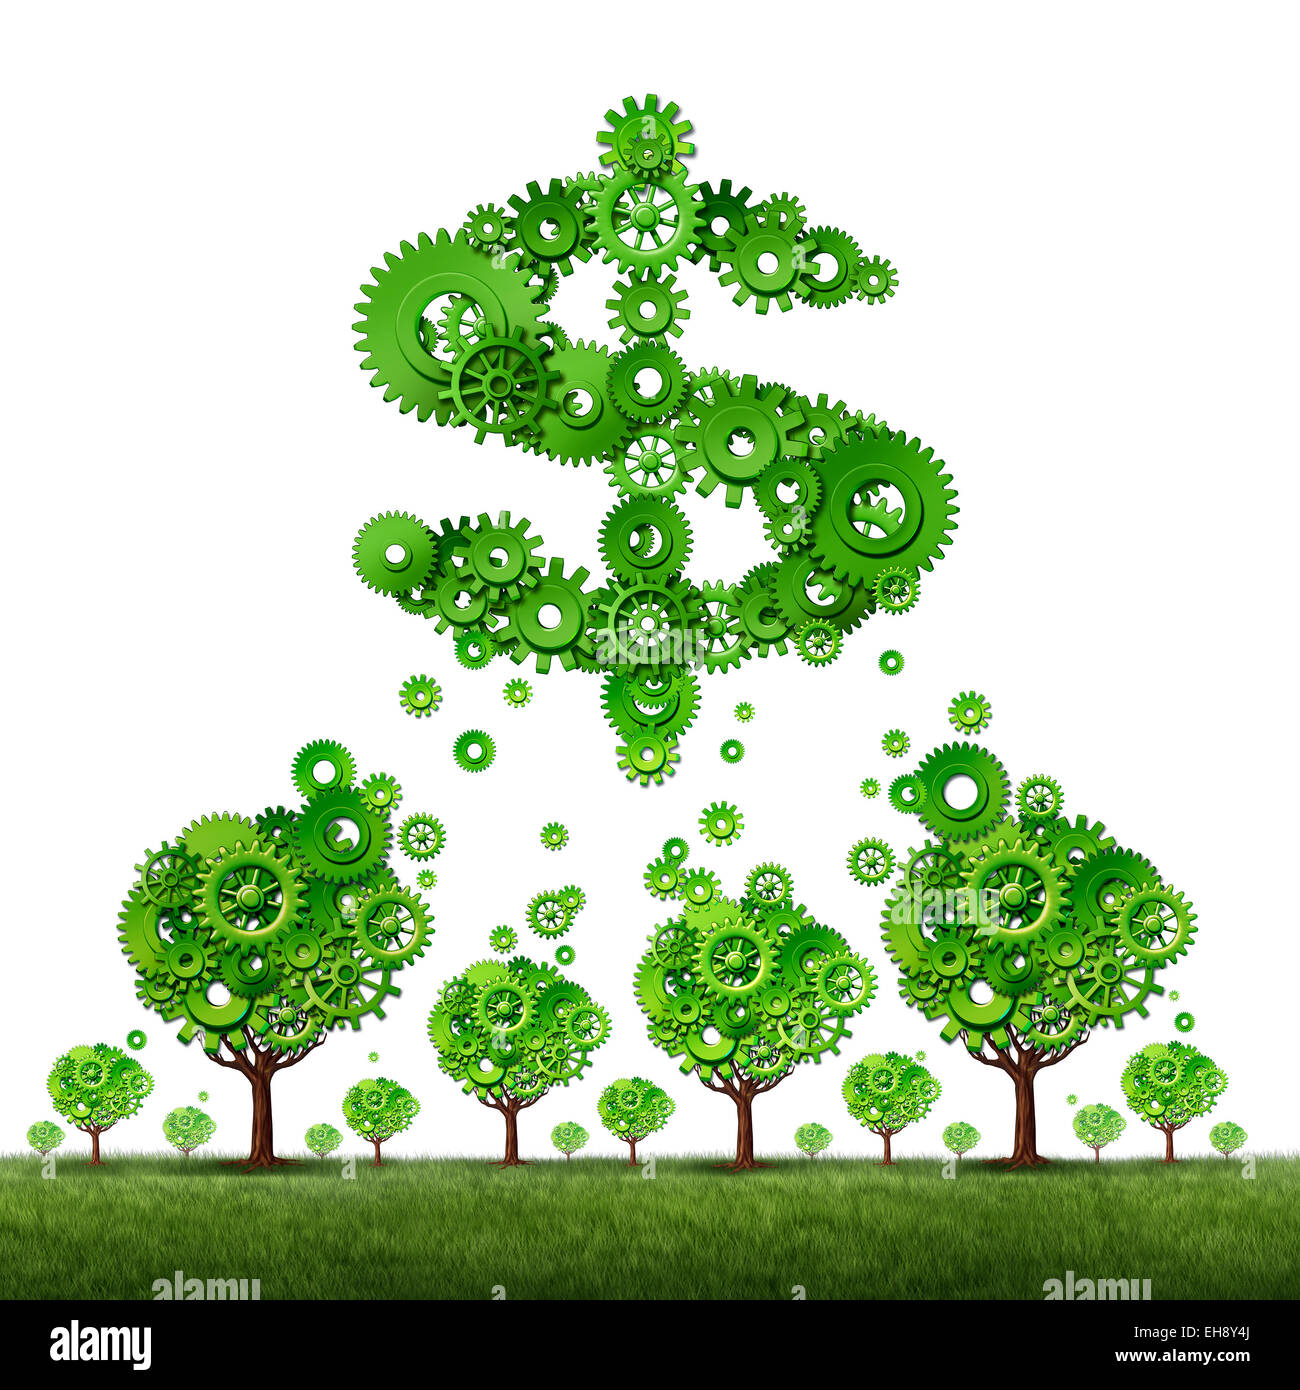 crowdfunding investing and collective income concept as a group of green trees made of gears contributing to a dollar - Stock Image